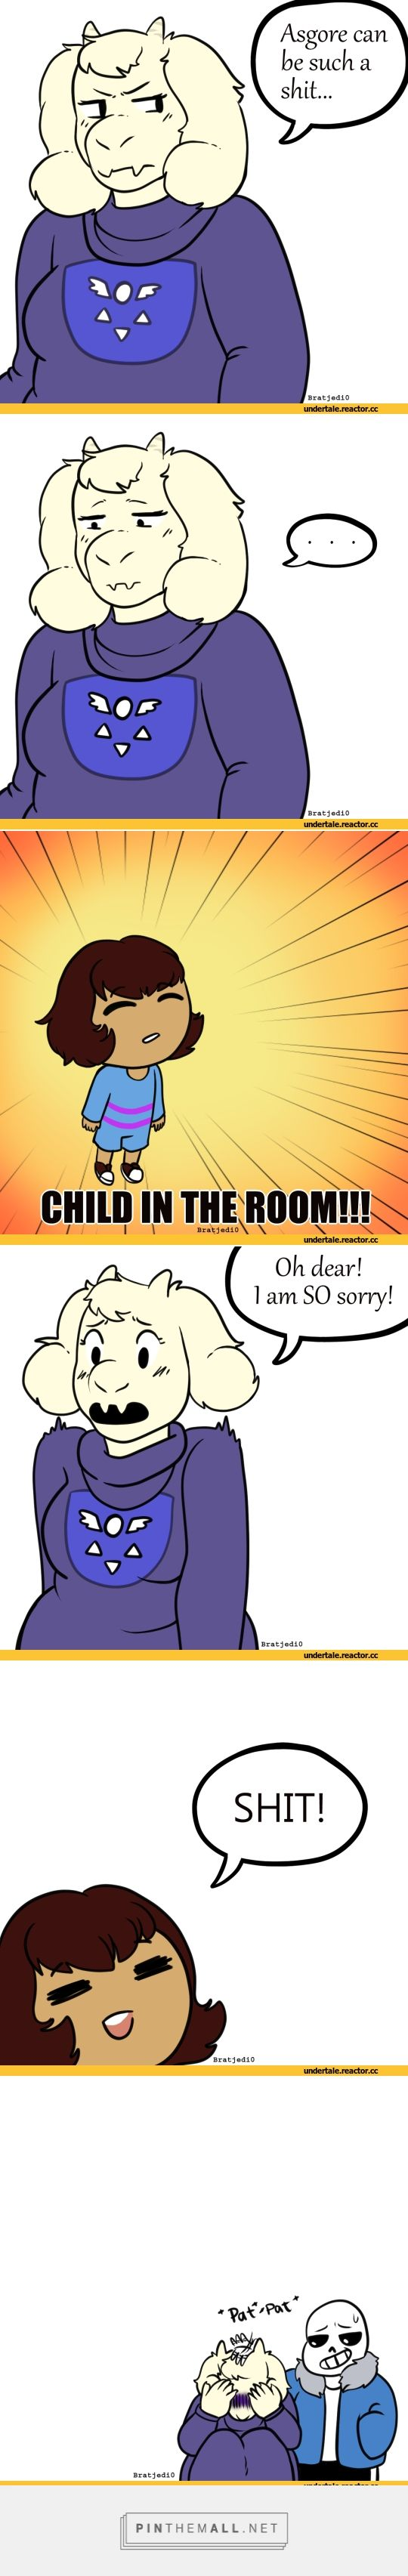 Sans :: Frisk :: Toriel :: Undertale :: Aftertale - created via https://pinthemall.net